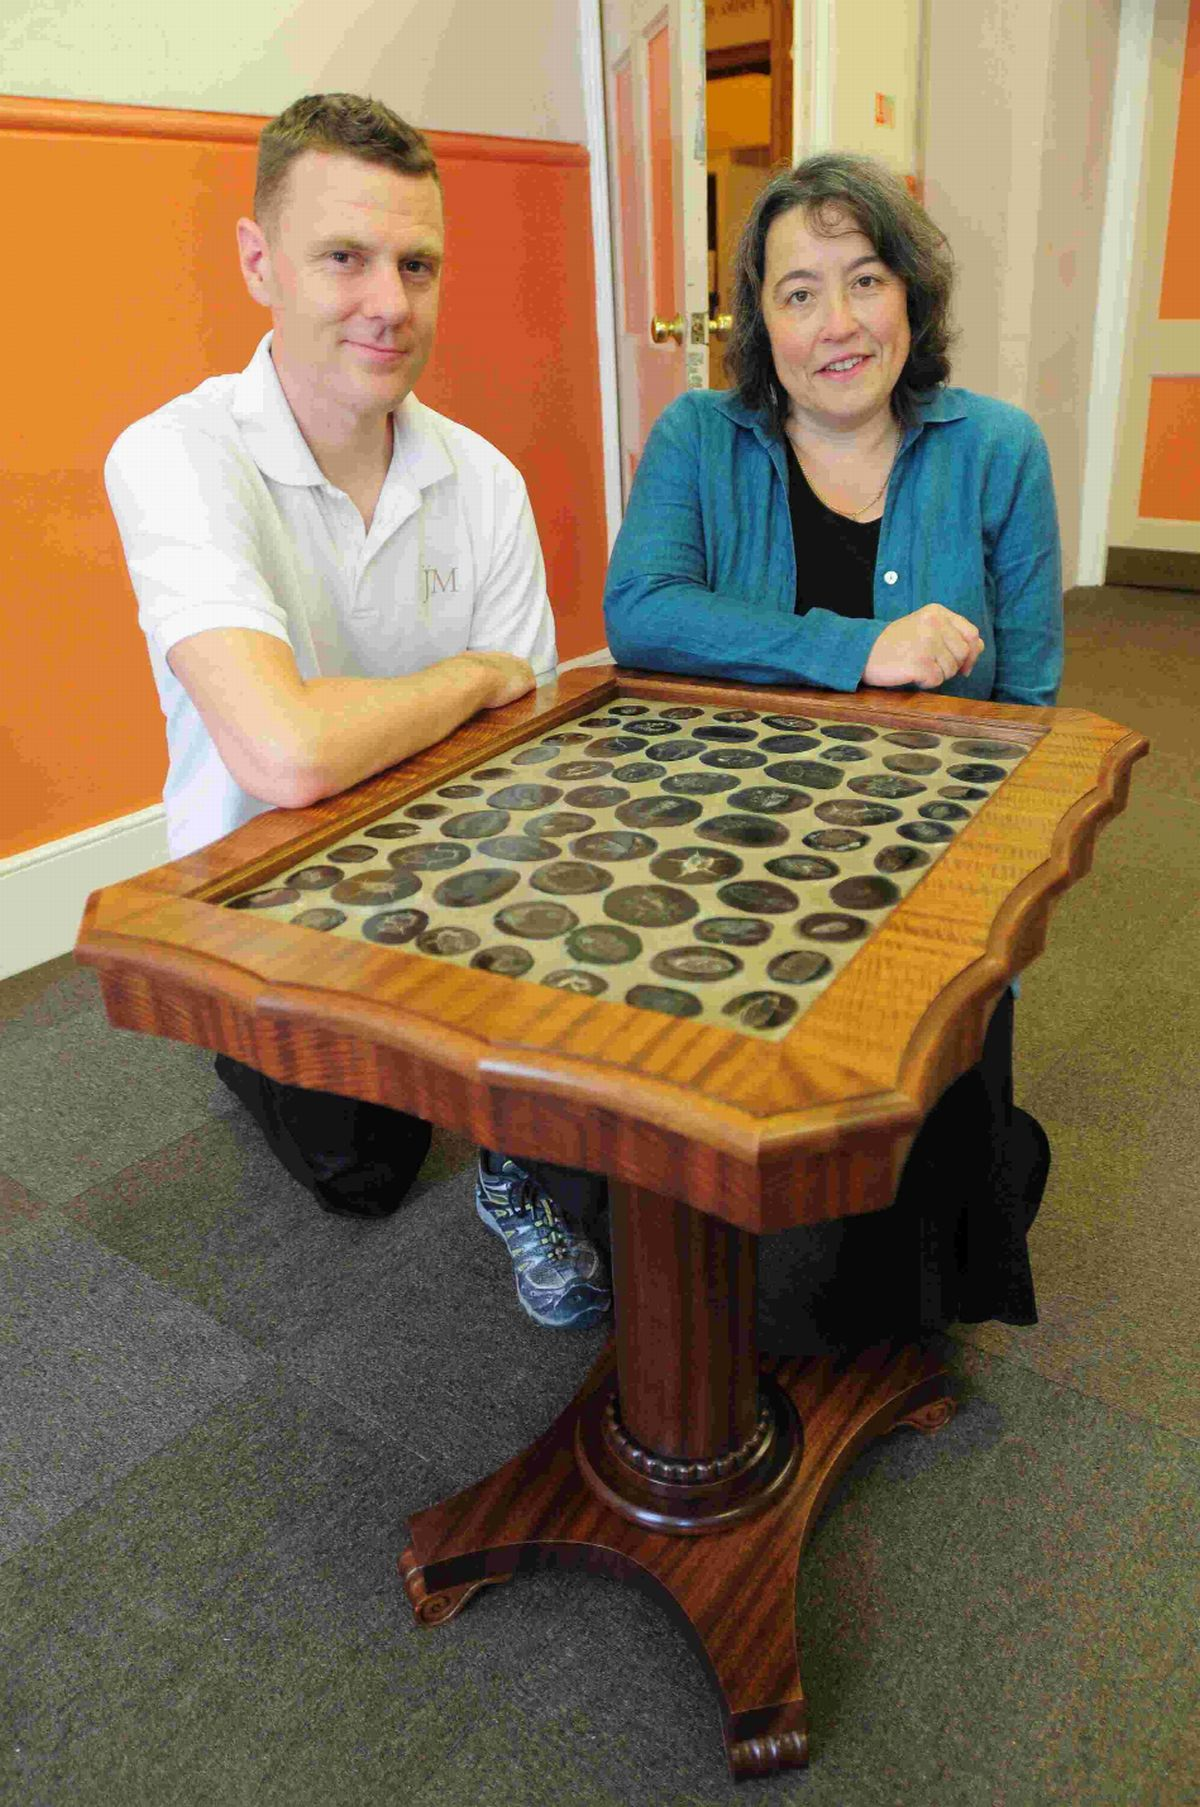 WELL DUNG: Jonathan Matthews and Kate Hebditch